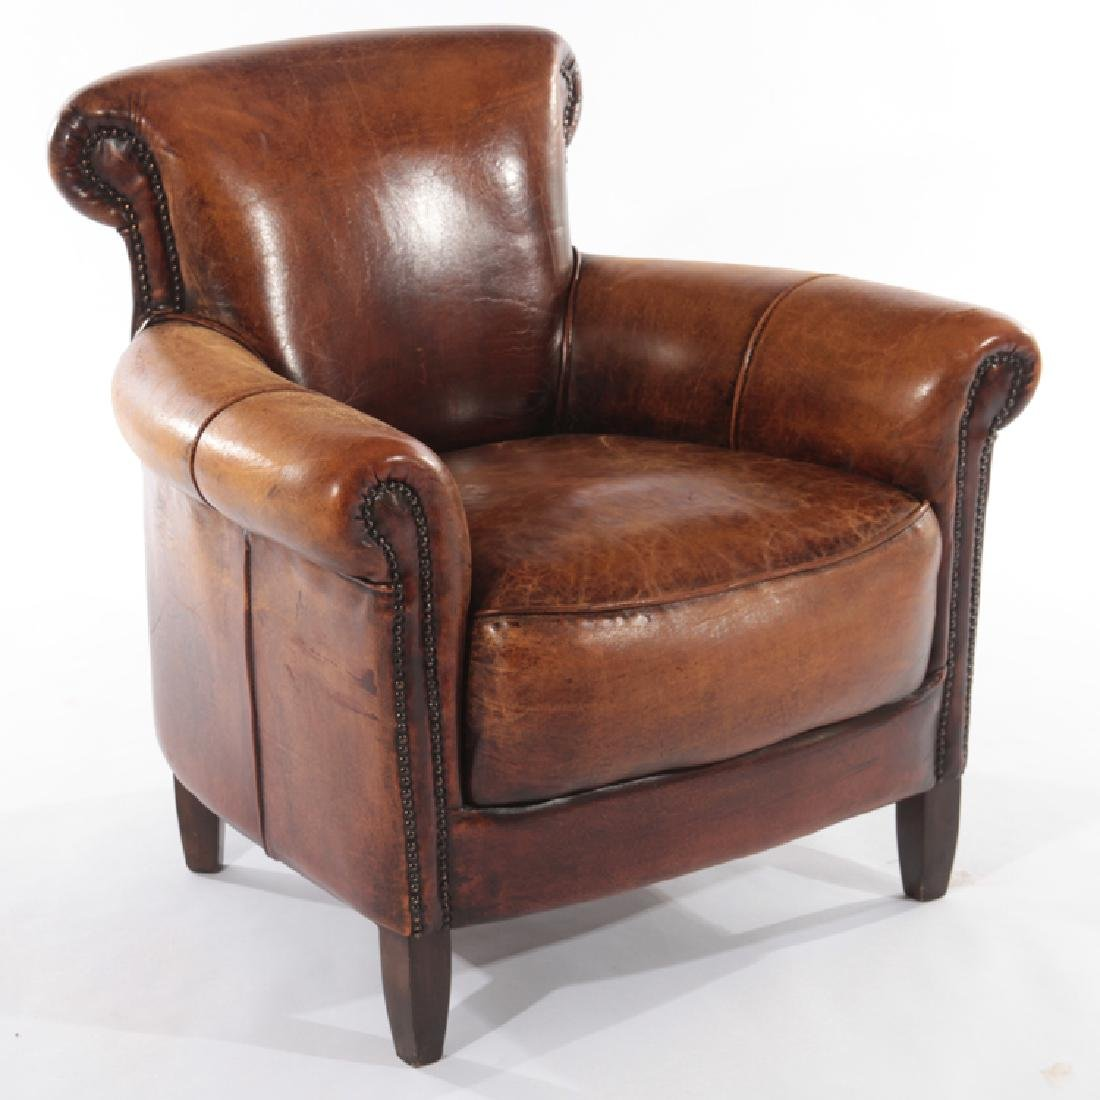 PAIR ENGLISH LEATHER CLUB CHAIRS - 2